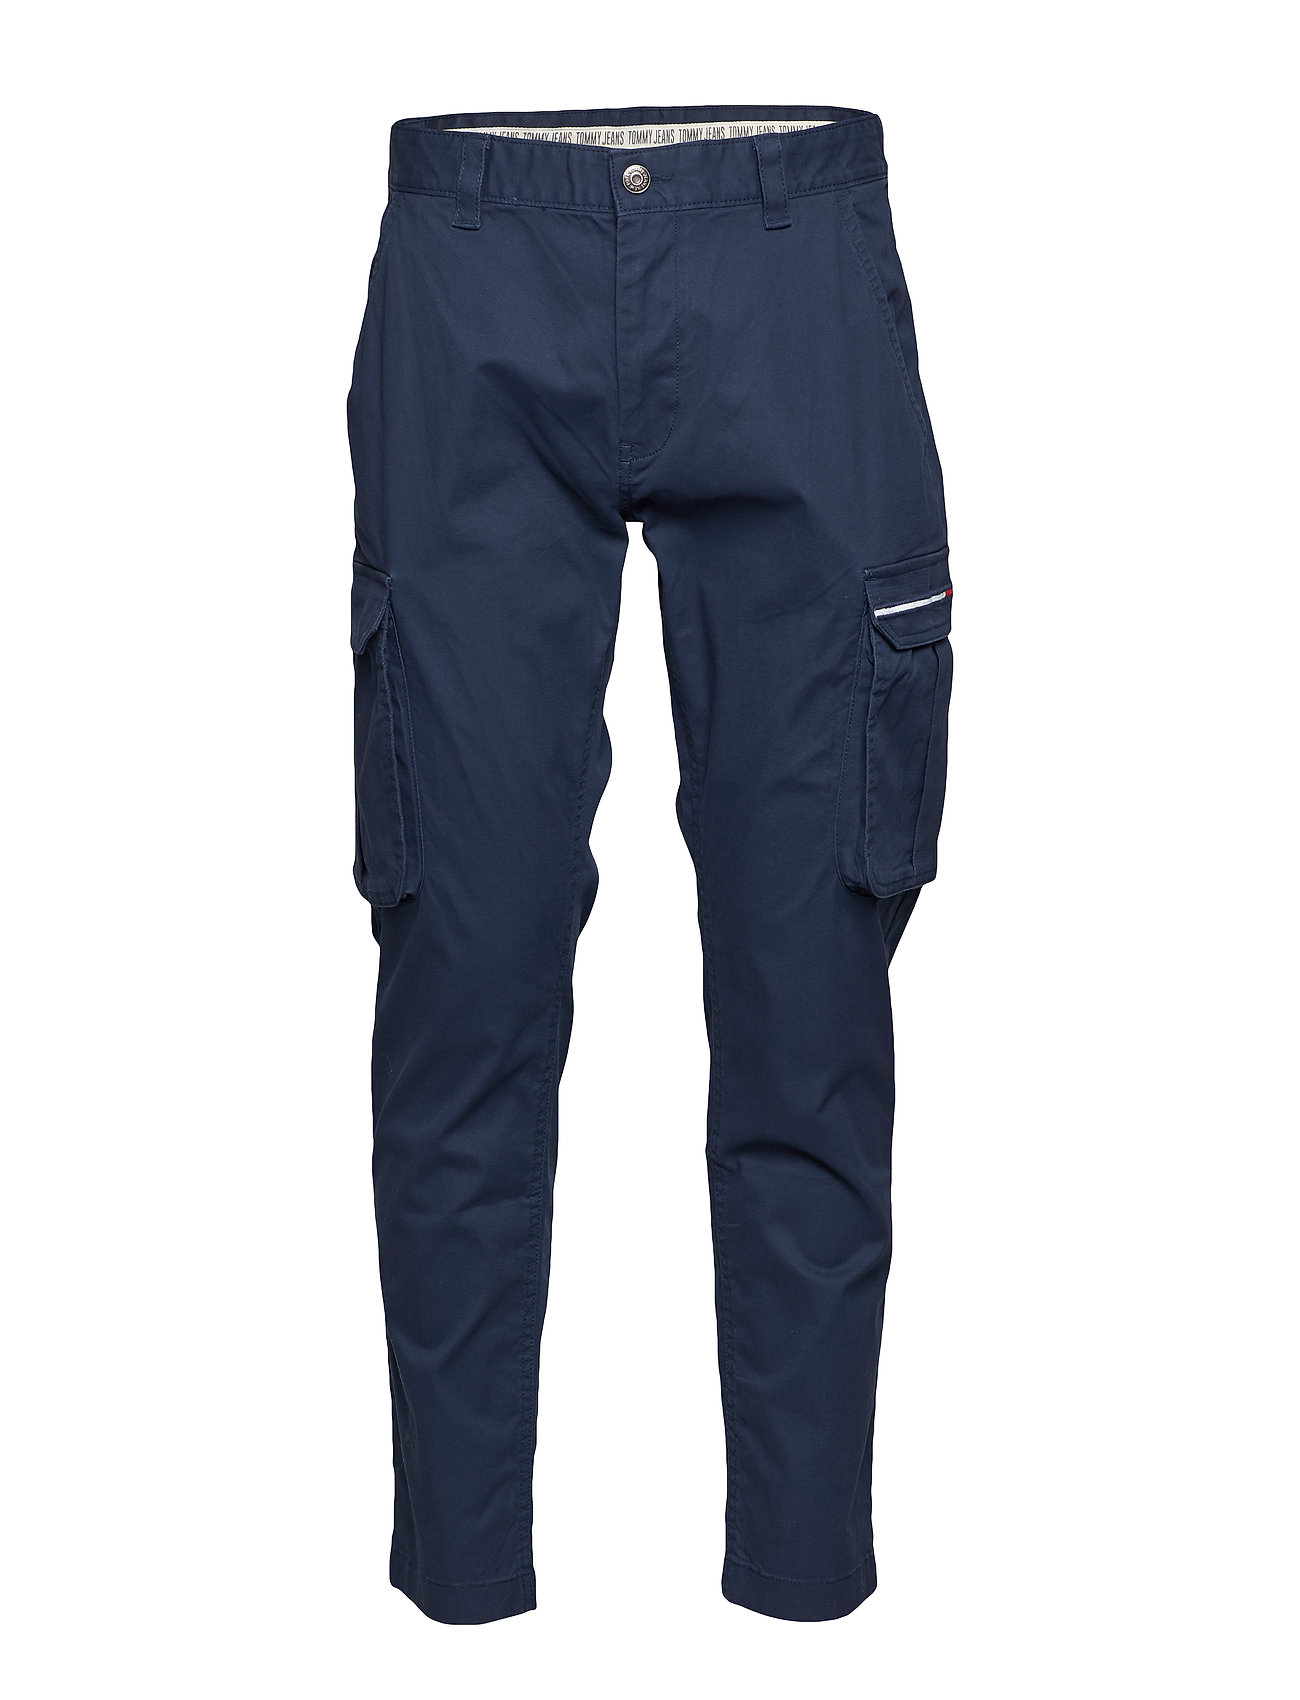 Image of Tjm Cargo Dobby Pant Trousers Cargo Pants Blå Tommy Jeans (3309076309)